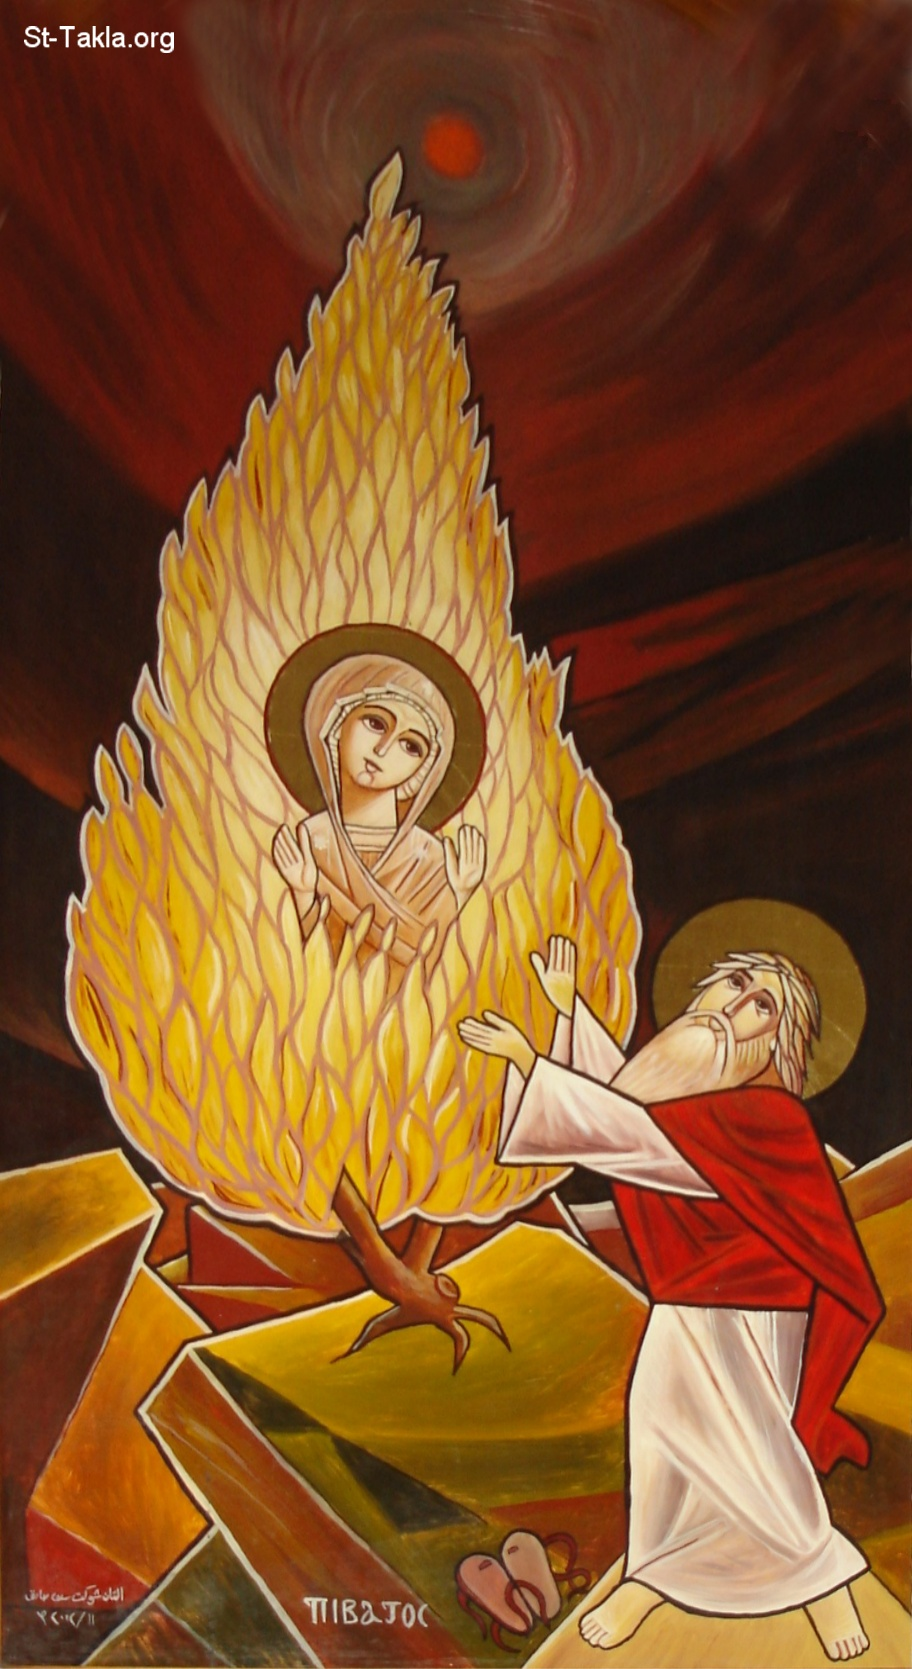 St-Takla.org         Image: Saint Moses the Prophet with the burning bush, which symbolizes Saint Mary the Virgin that didn't burn by the fire of the Theology, modern Coptic art icon by Shawkat Seif Sadek, 2002, at St. Mark's chapel (inside St. Mark's Cathedral), Alexandria, Egypt ����: ������ ���� ������ ���� ����� �� ������� �������ɡ ����� ���� ��� ������ ������� ���� �� ����� ���� ������ʡ �� ���� ������ ������ѡ ���� ������ ������ ���� ��� ���ޡ 2002� �� ������� ������� ���������� ������ ���� ������ �����������